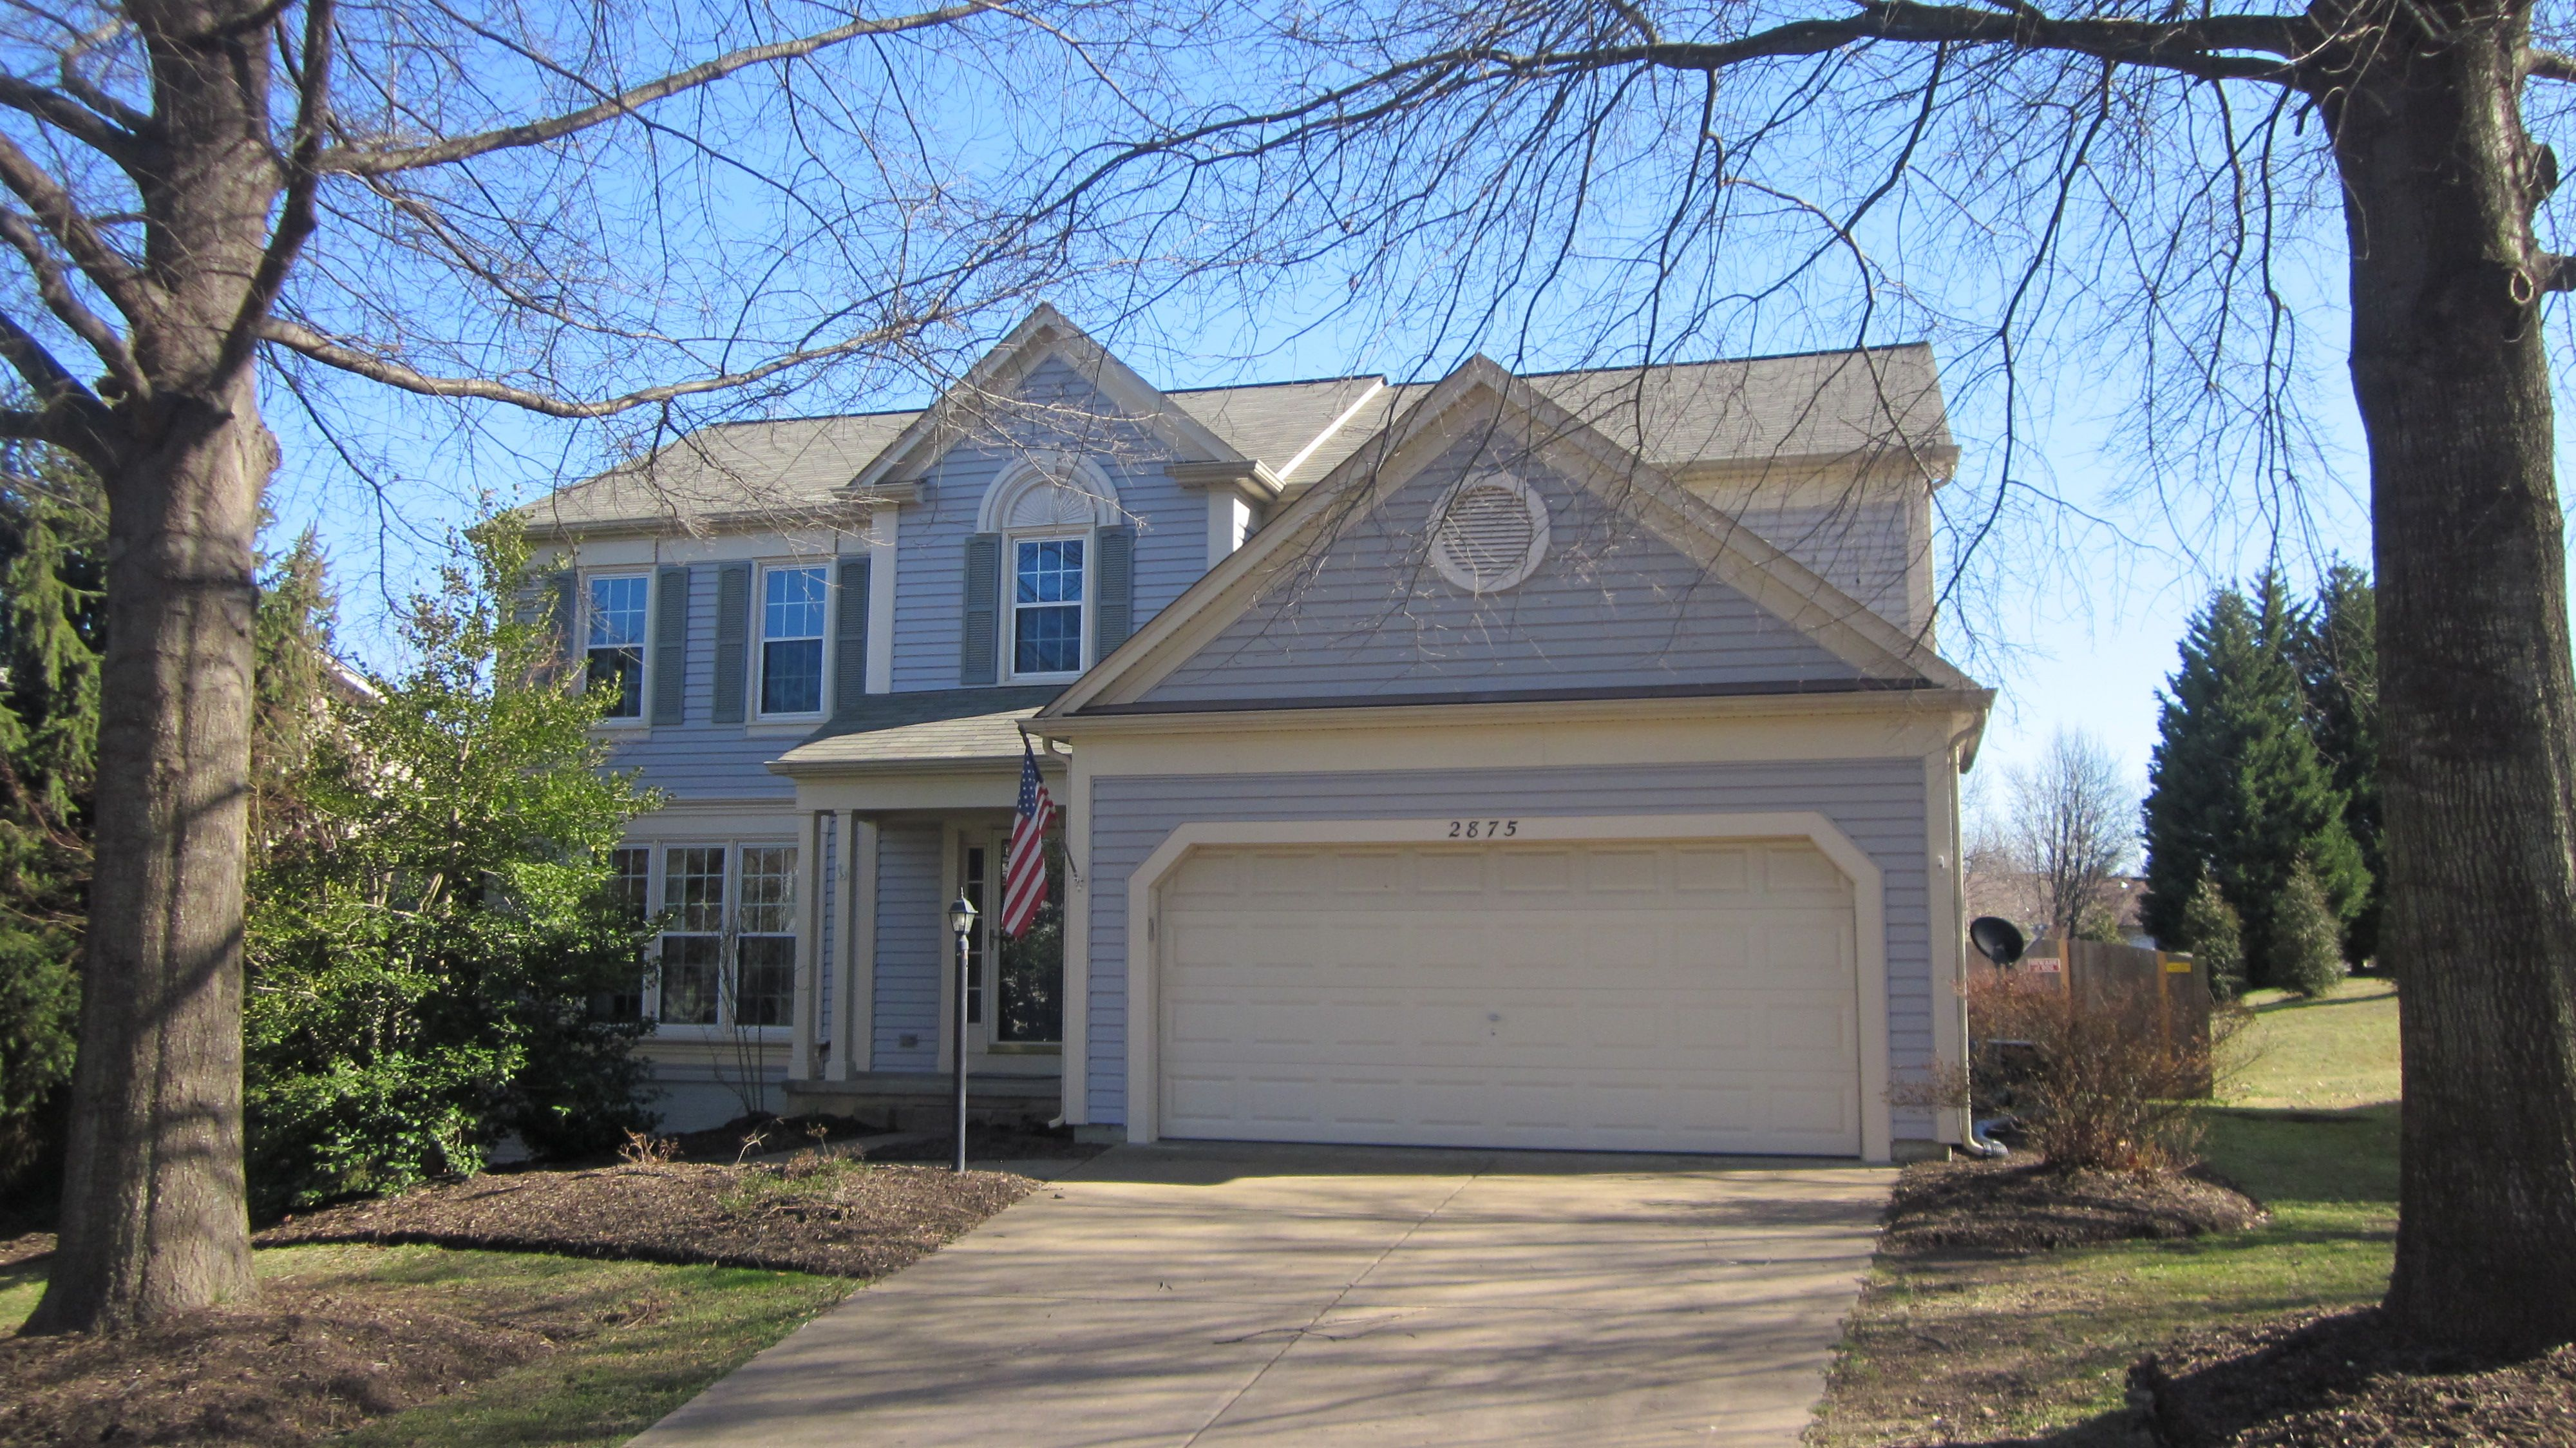 Pin on homes listed sold by claudia s nelson